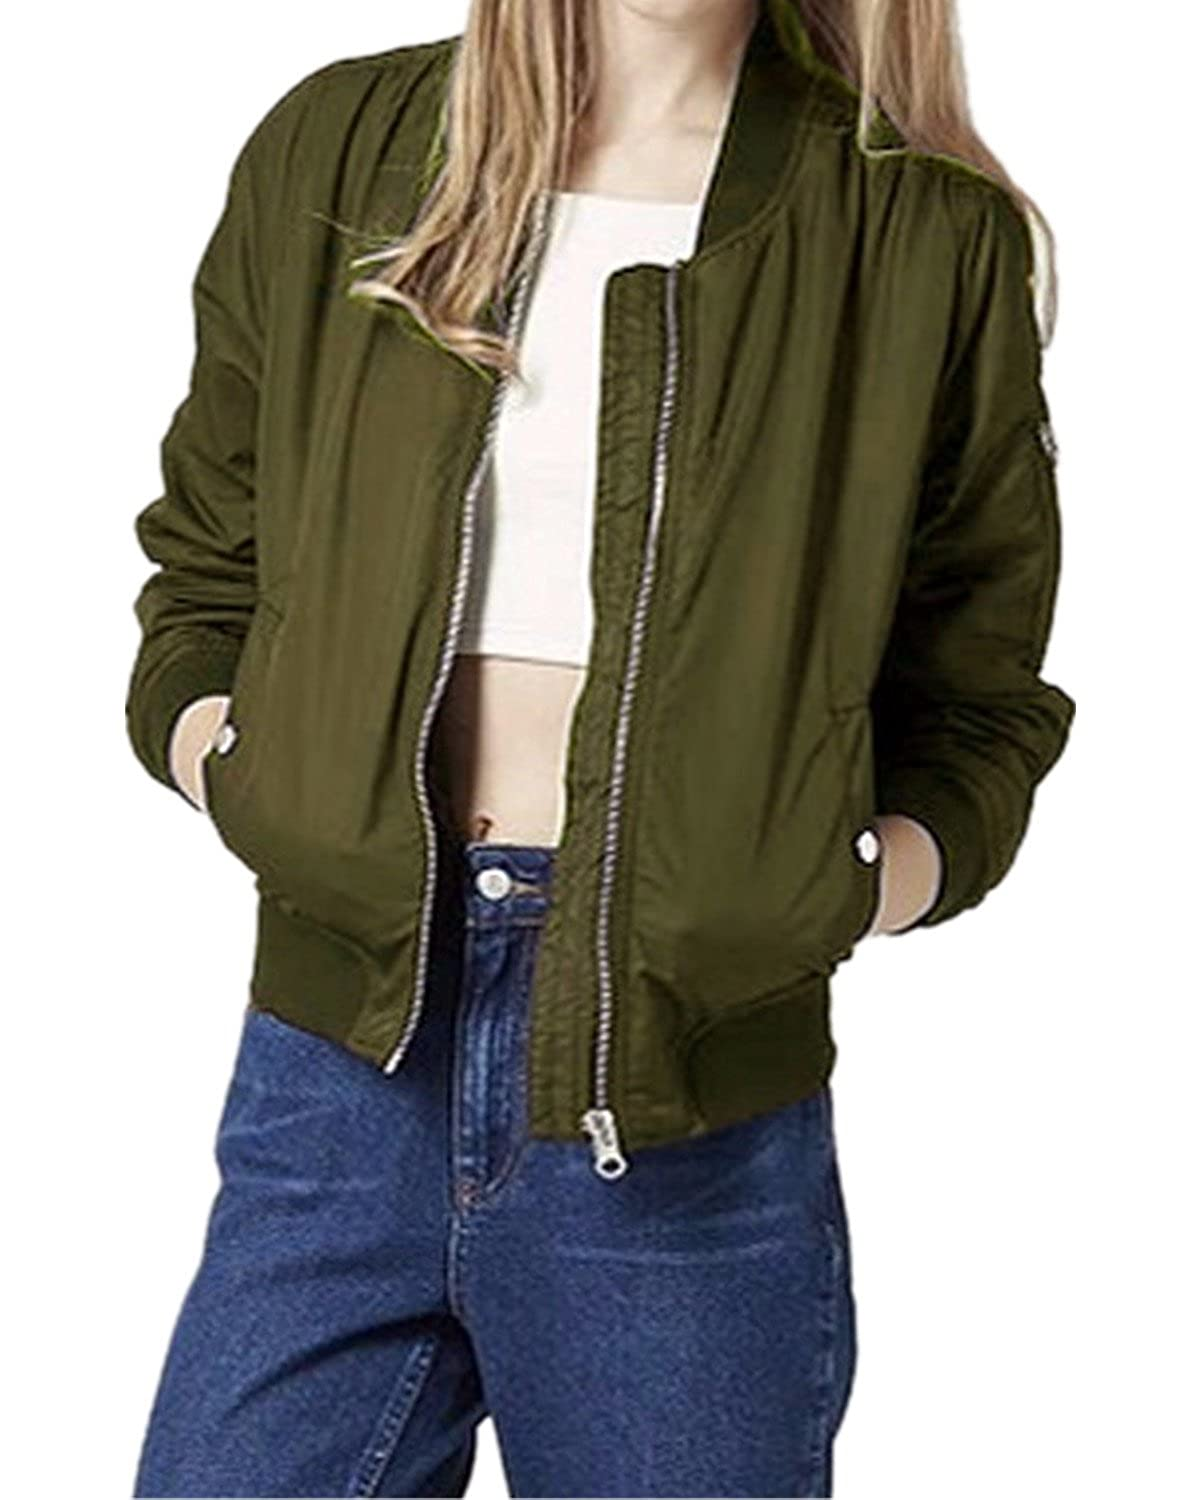 afb5f4748 Cool and Stylish Short Bomber Jacket, Lightweight, Long sleeve, Zipper  Design, Short Zipper Feature on the Sleeve, Short Biker,Classic Quilted Coat.  Warm ...